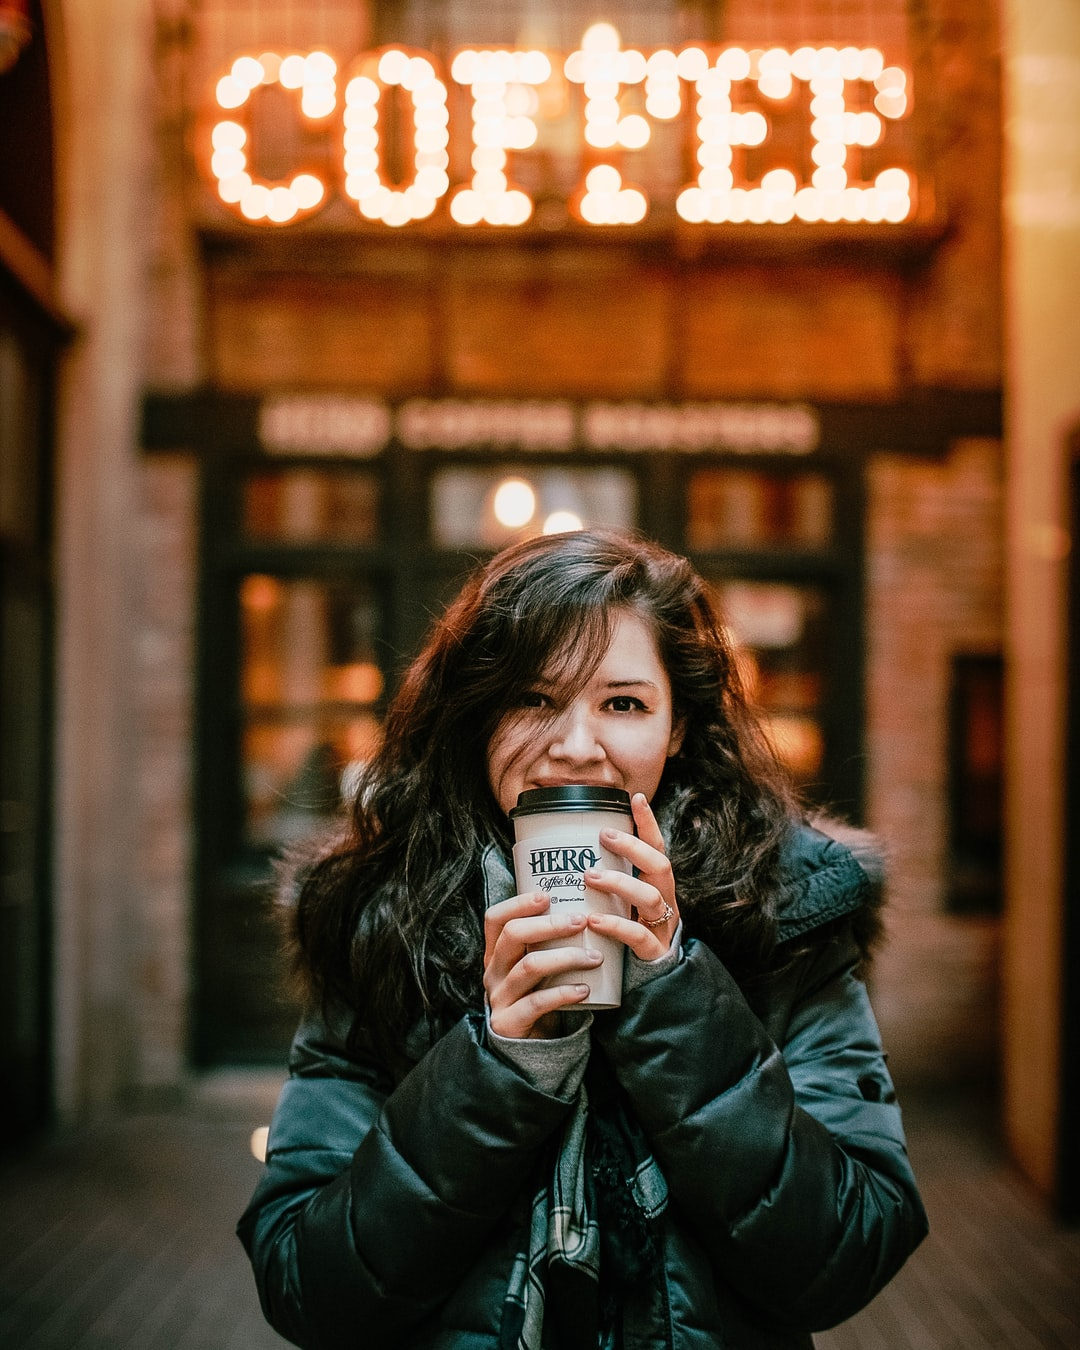 This photo was taken at a cute coffee shop in Chicago called Hero Coffee. My wife is absolutely in love with their lattes and me with their hot chocolate.